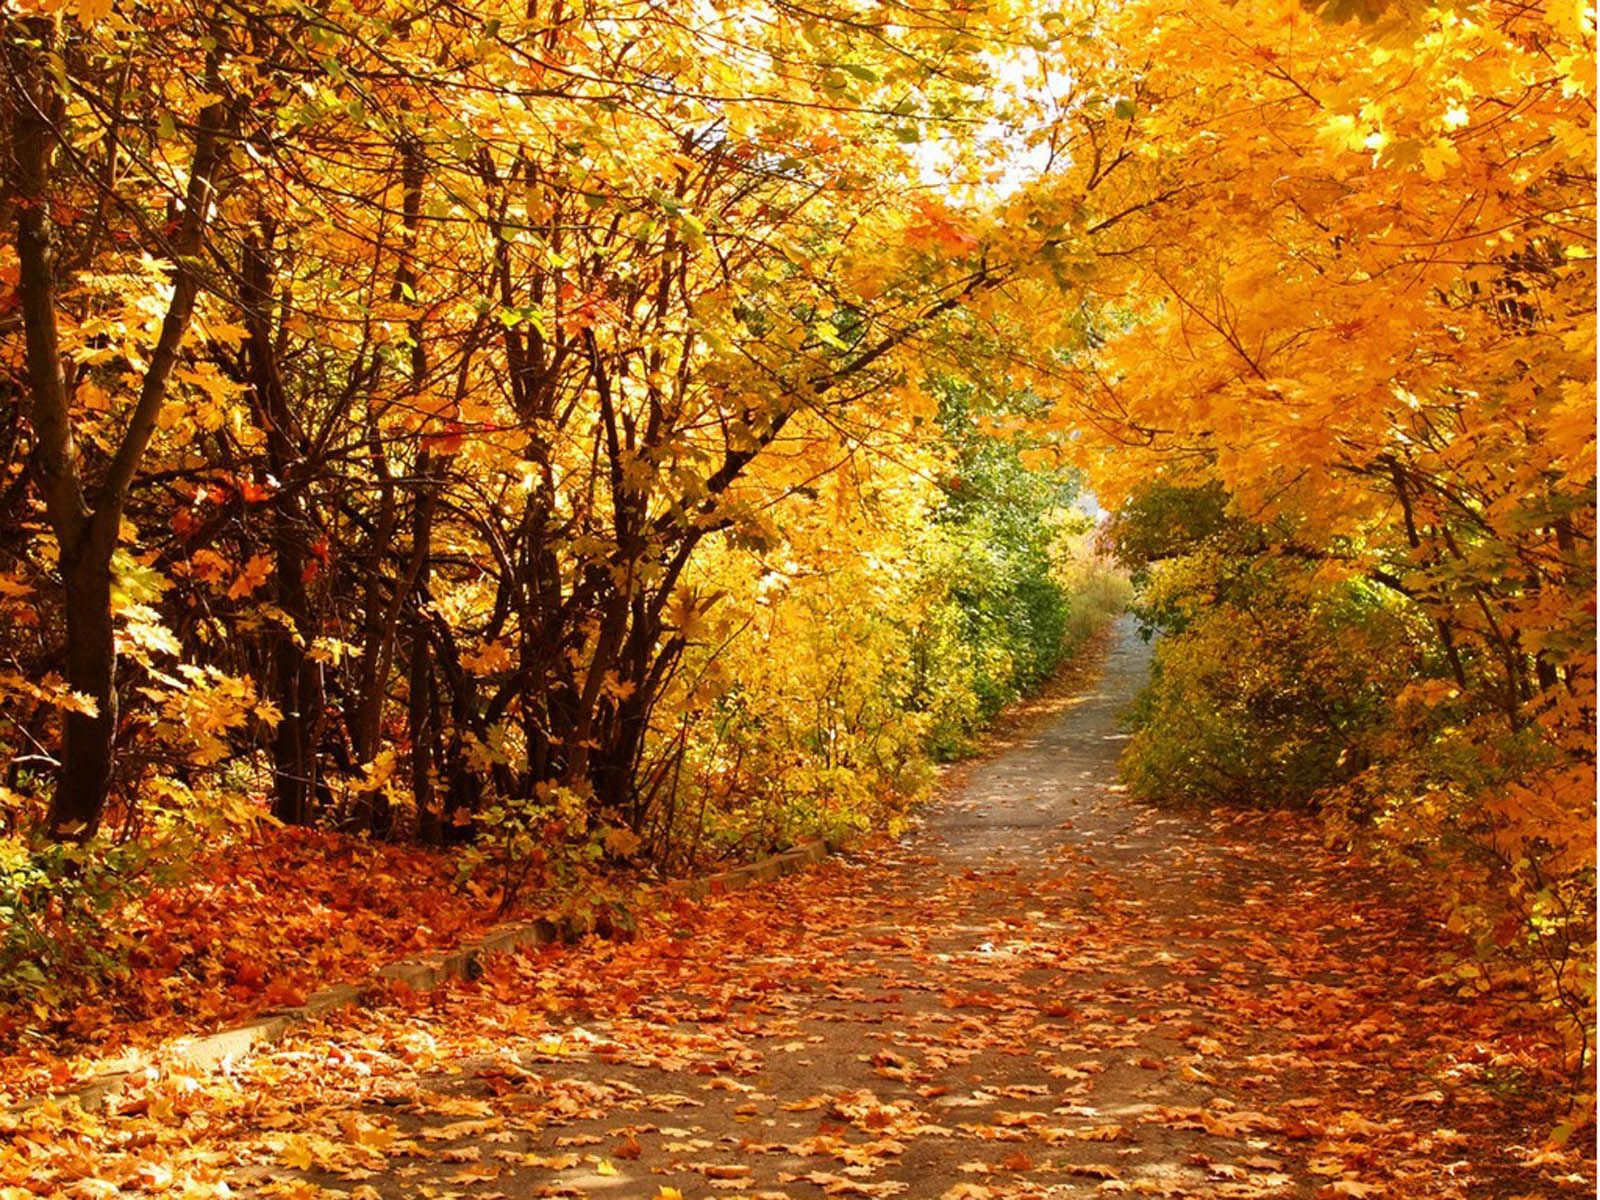 Autumn Scenery Desktop Wallpapers Beautiful Autumn Scenery Desktop Autumn Scenery Scenery Wallpaper Autumn Landscape